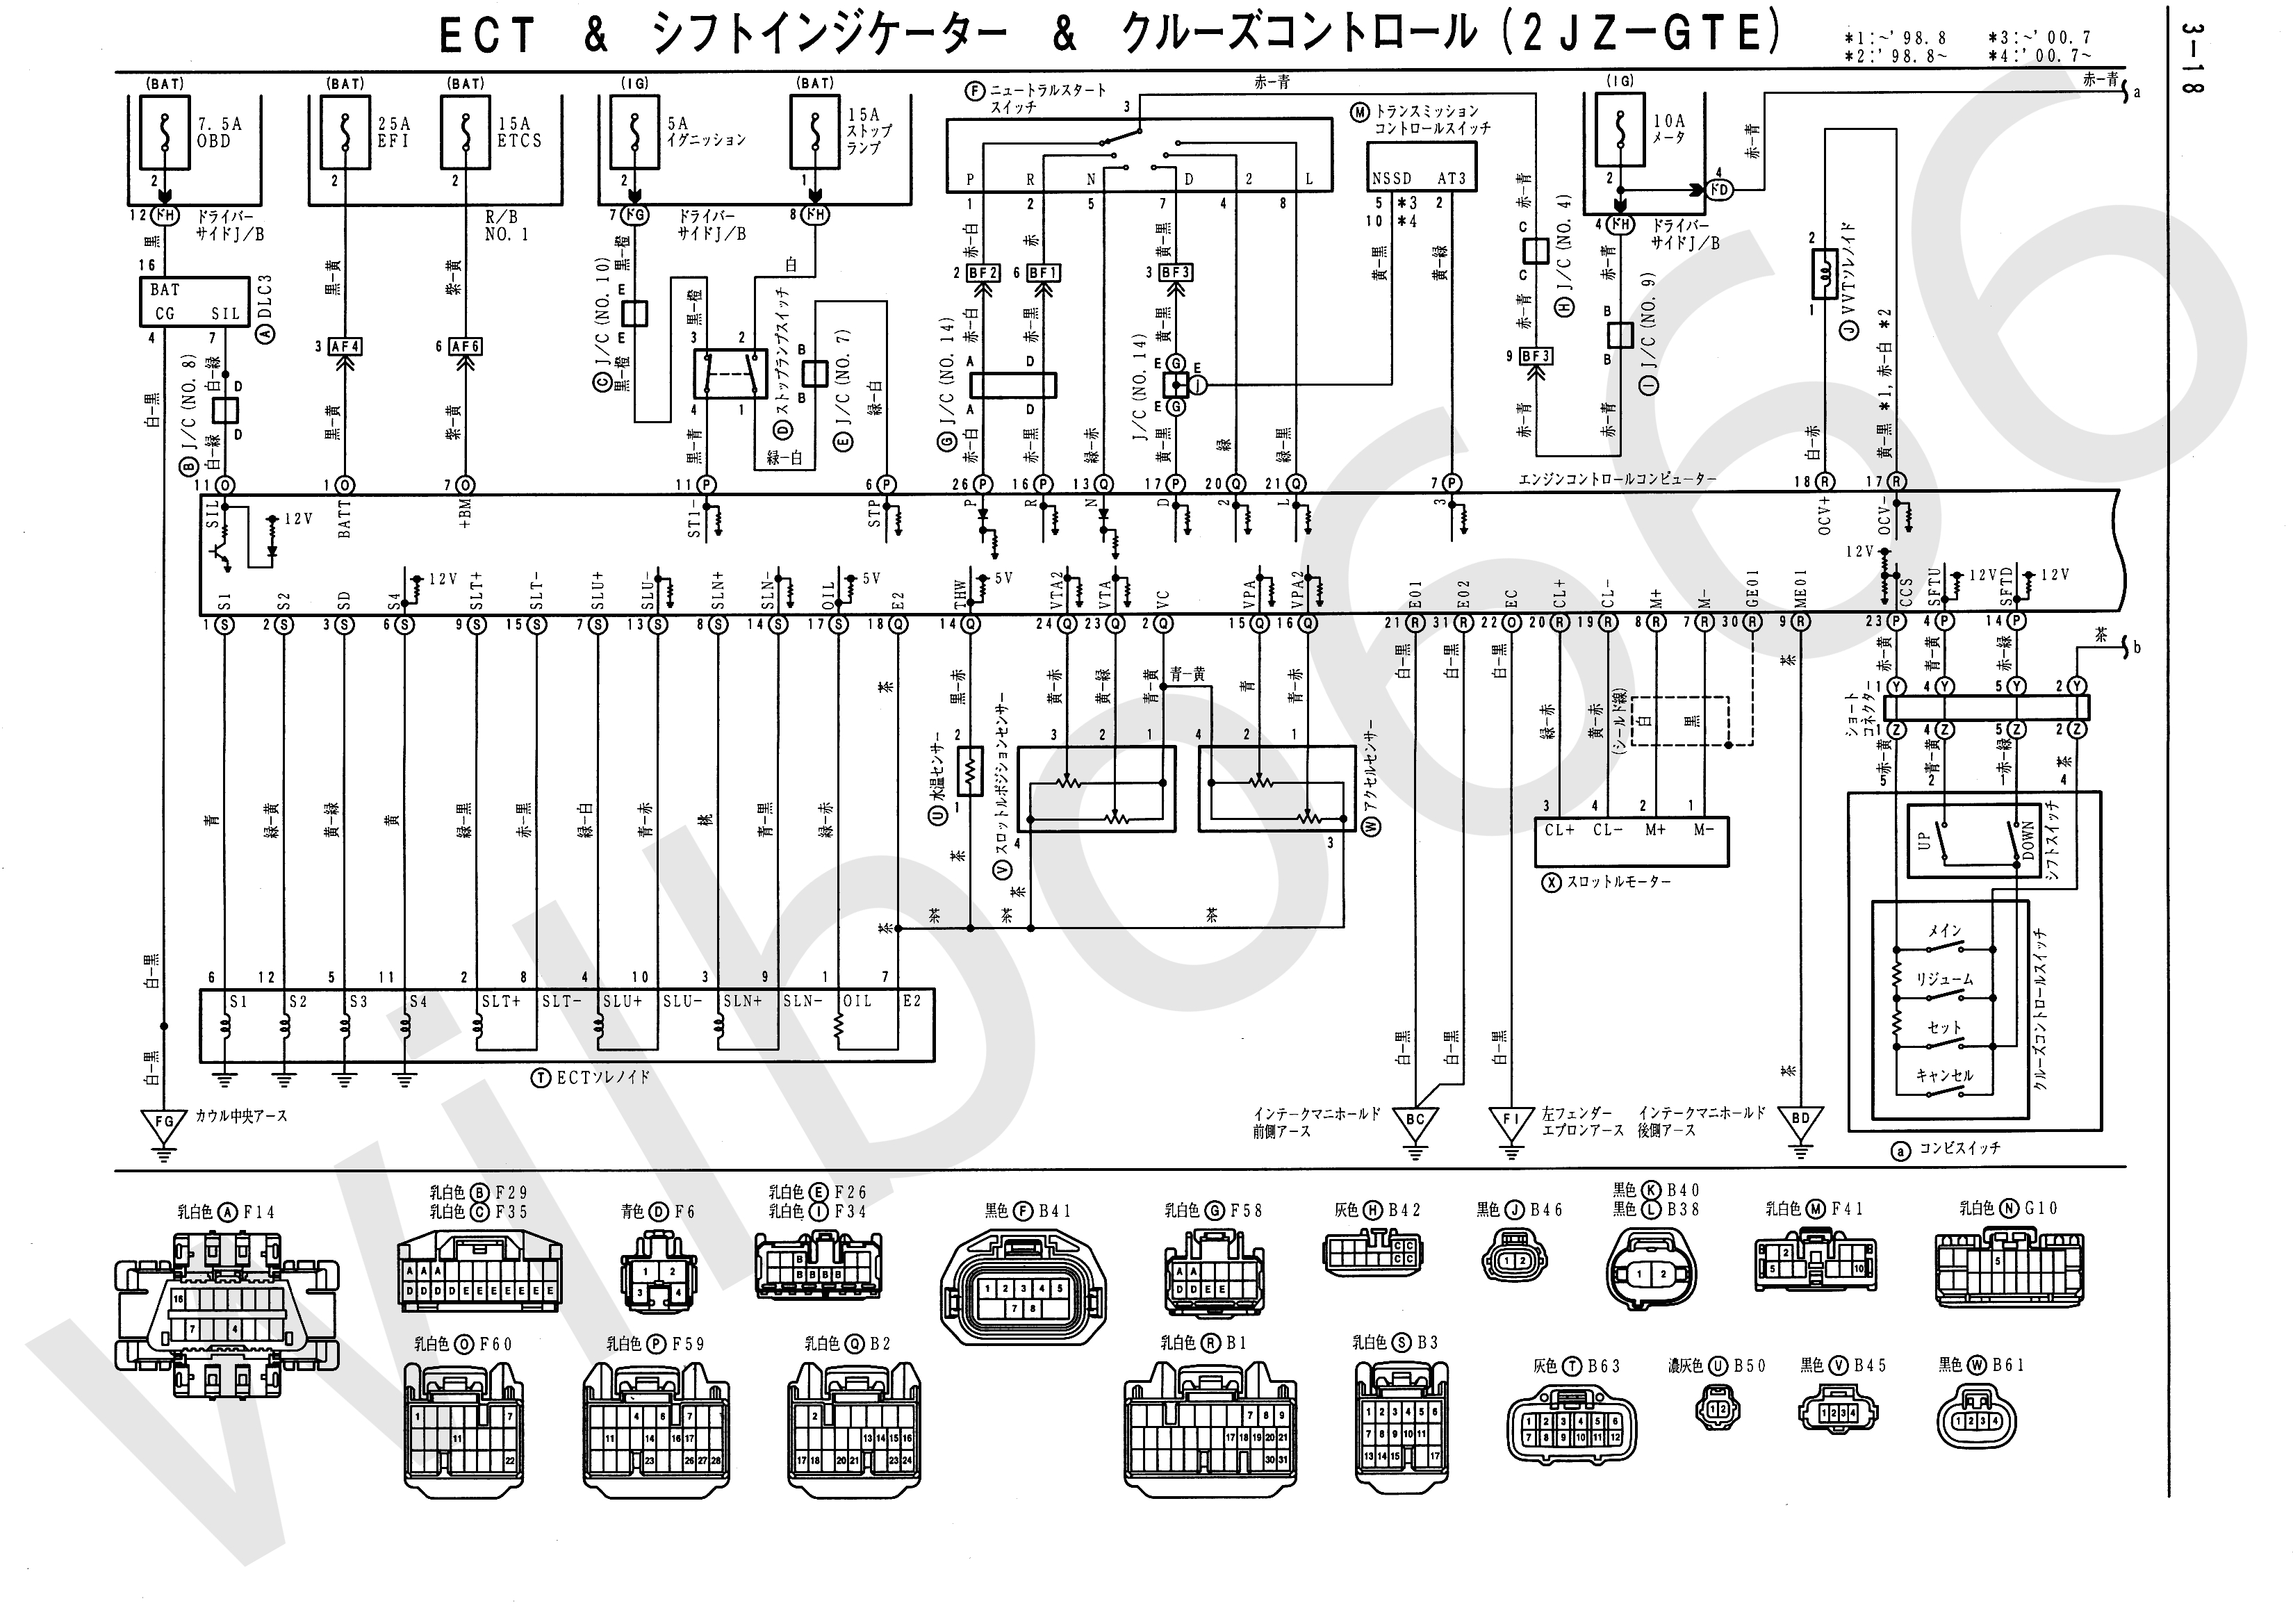 [DIAGRAM] Dvi Connector Pinout Wiring Diagram FULL Version